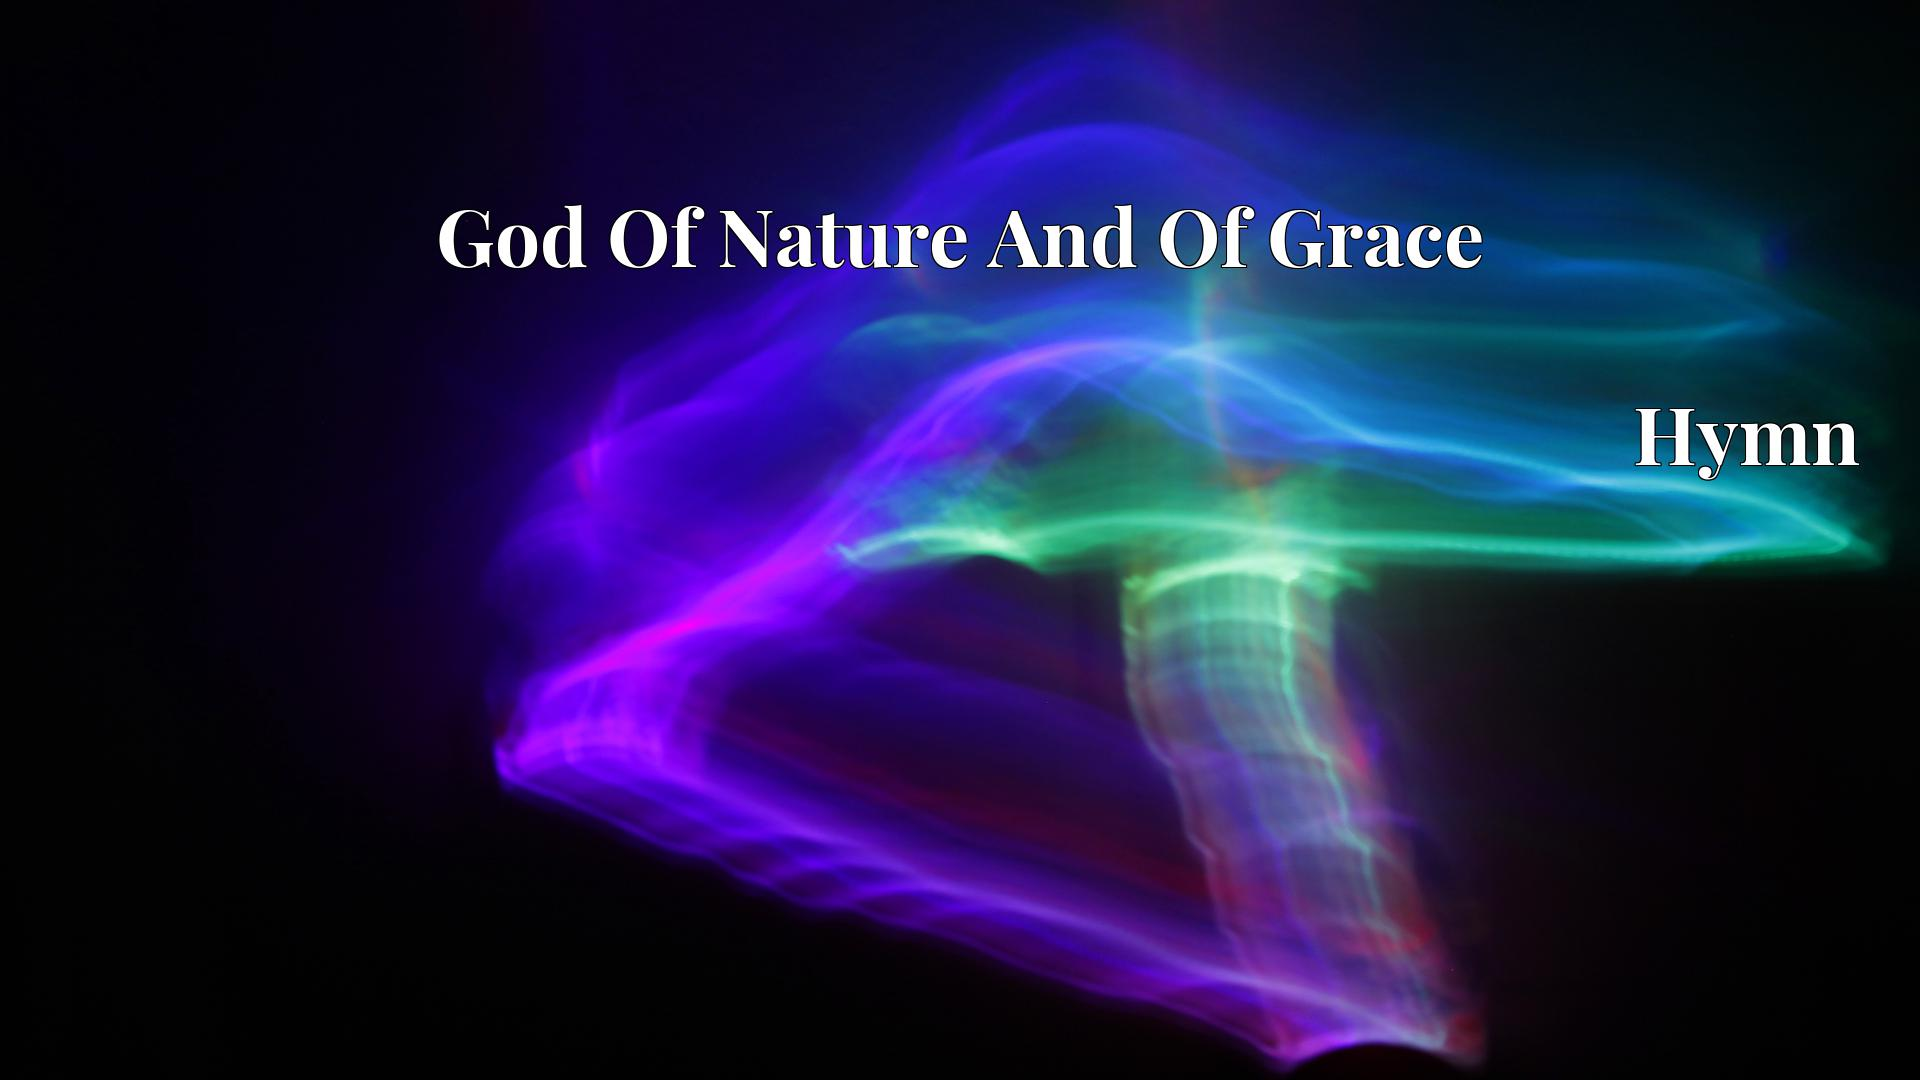 God Of Nature And Of Grace - Hymn